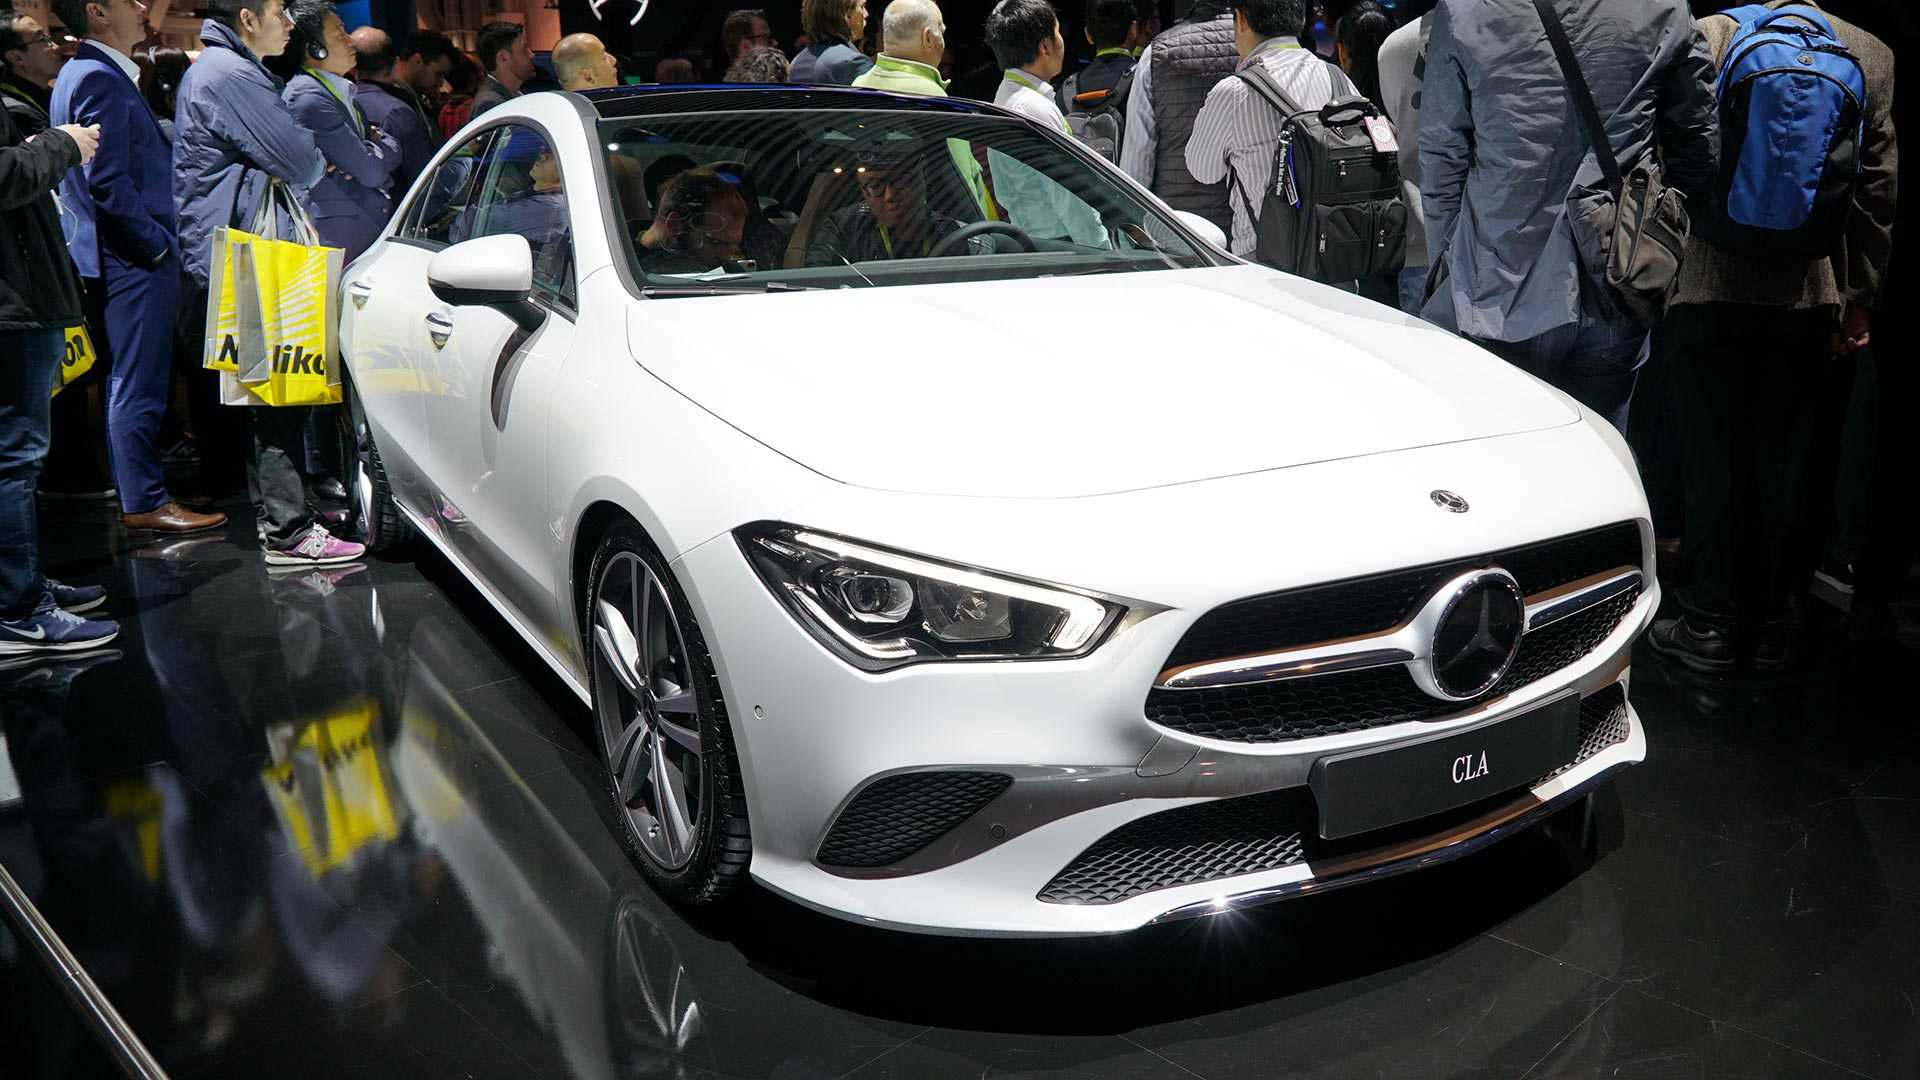 69 New Cla Mercedes 2020 Wallpaper for Cla Mercedes 2020